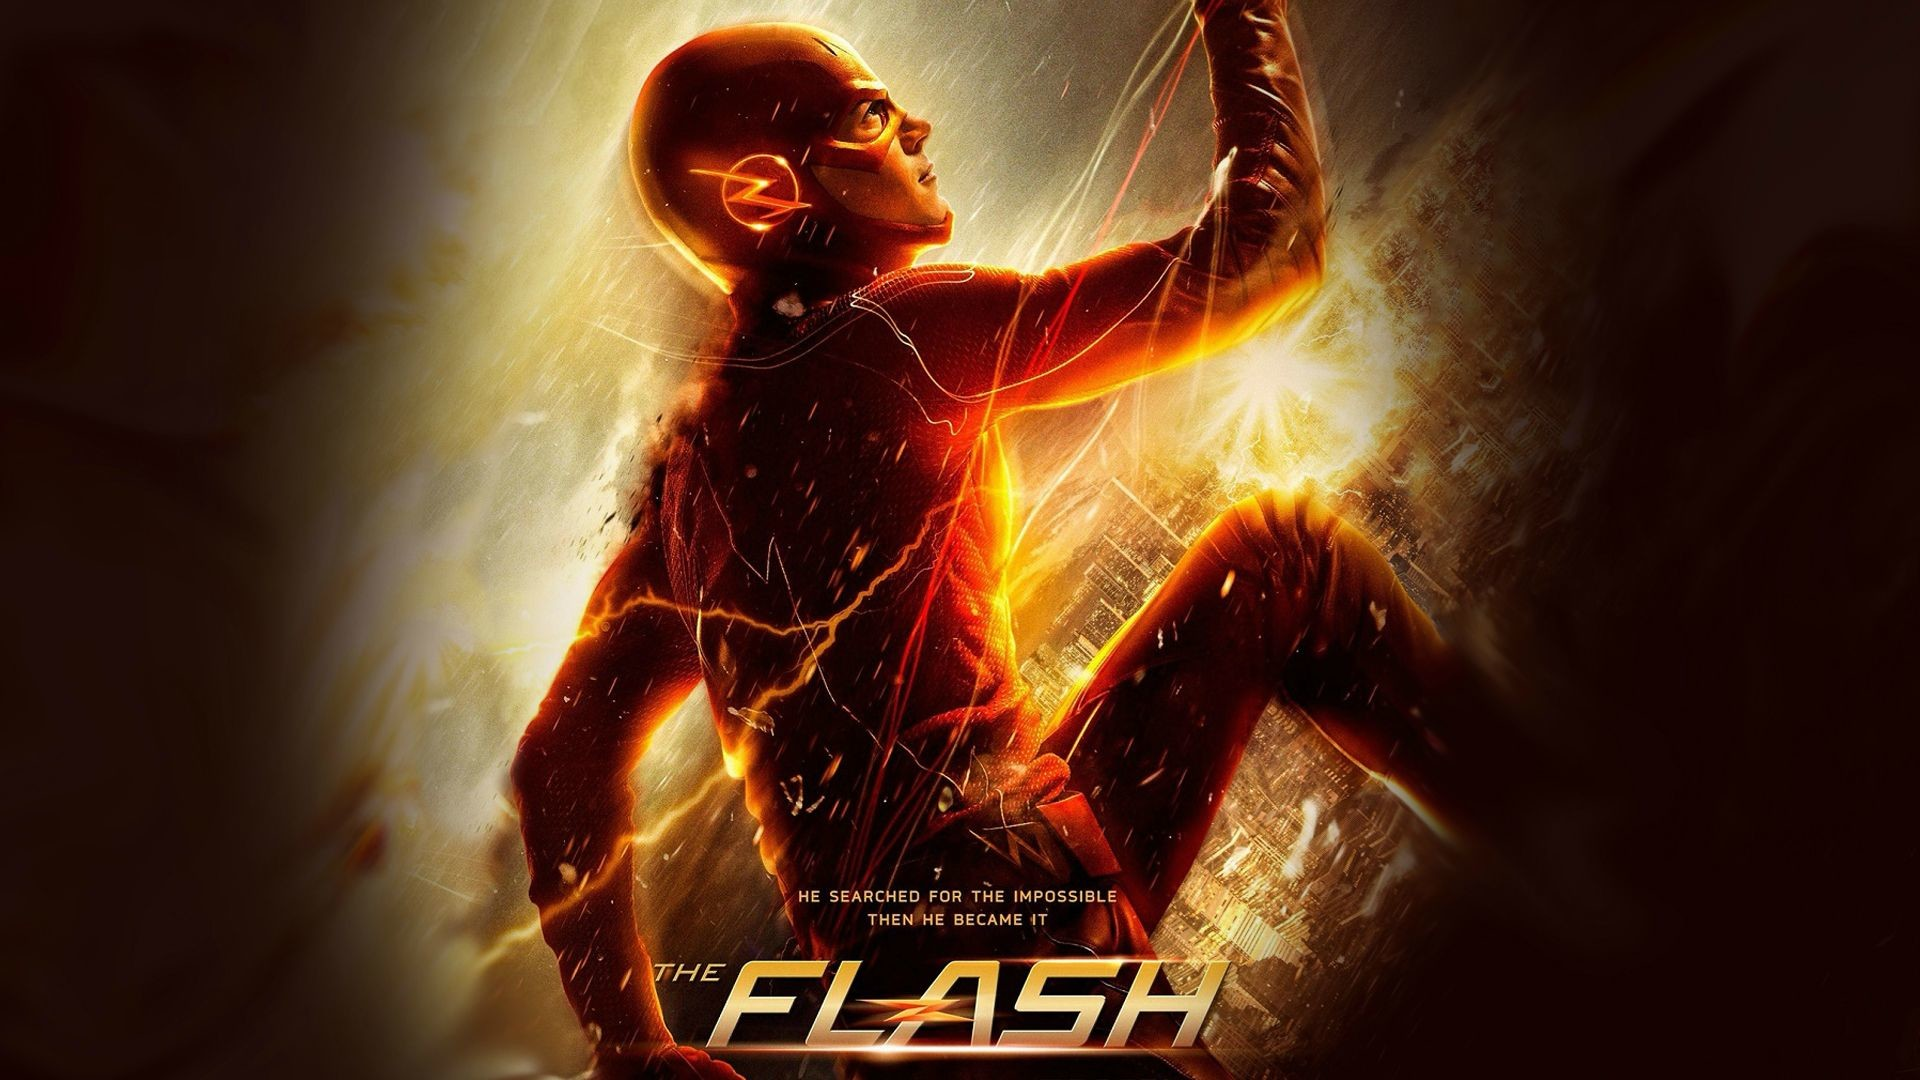 The Flash CW Wallpaper HD (79+ images) The Flash Wallpaper